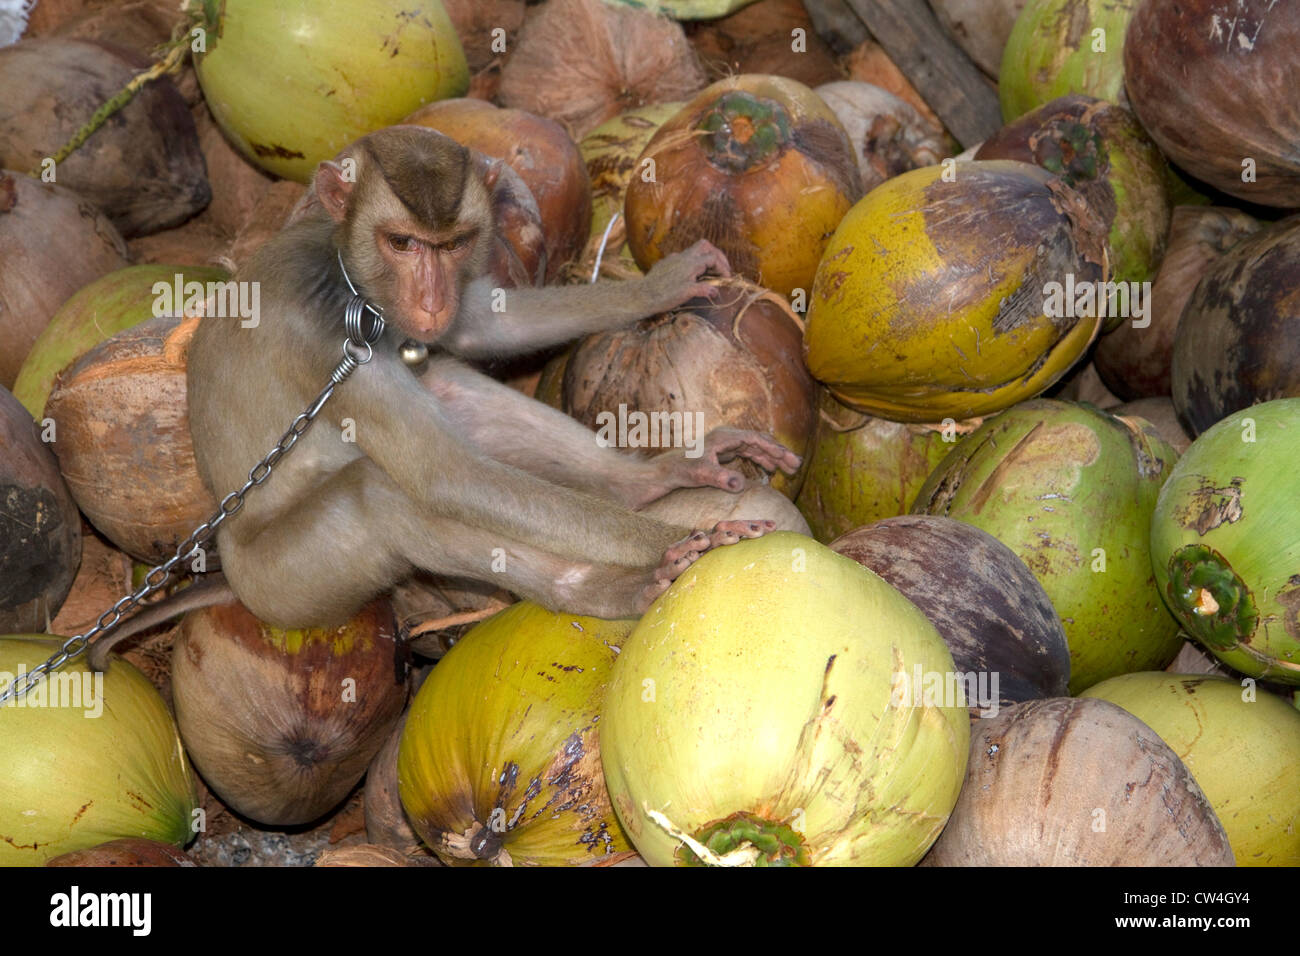 Trained monkey harvests coconuts from trees on the island of Ko Samui, Thailand. - Stock Image